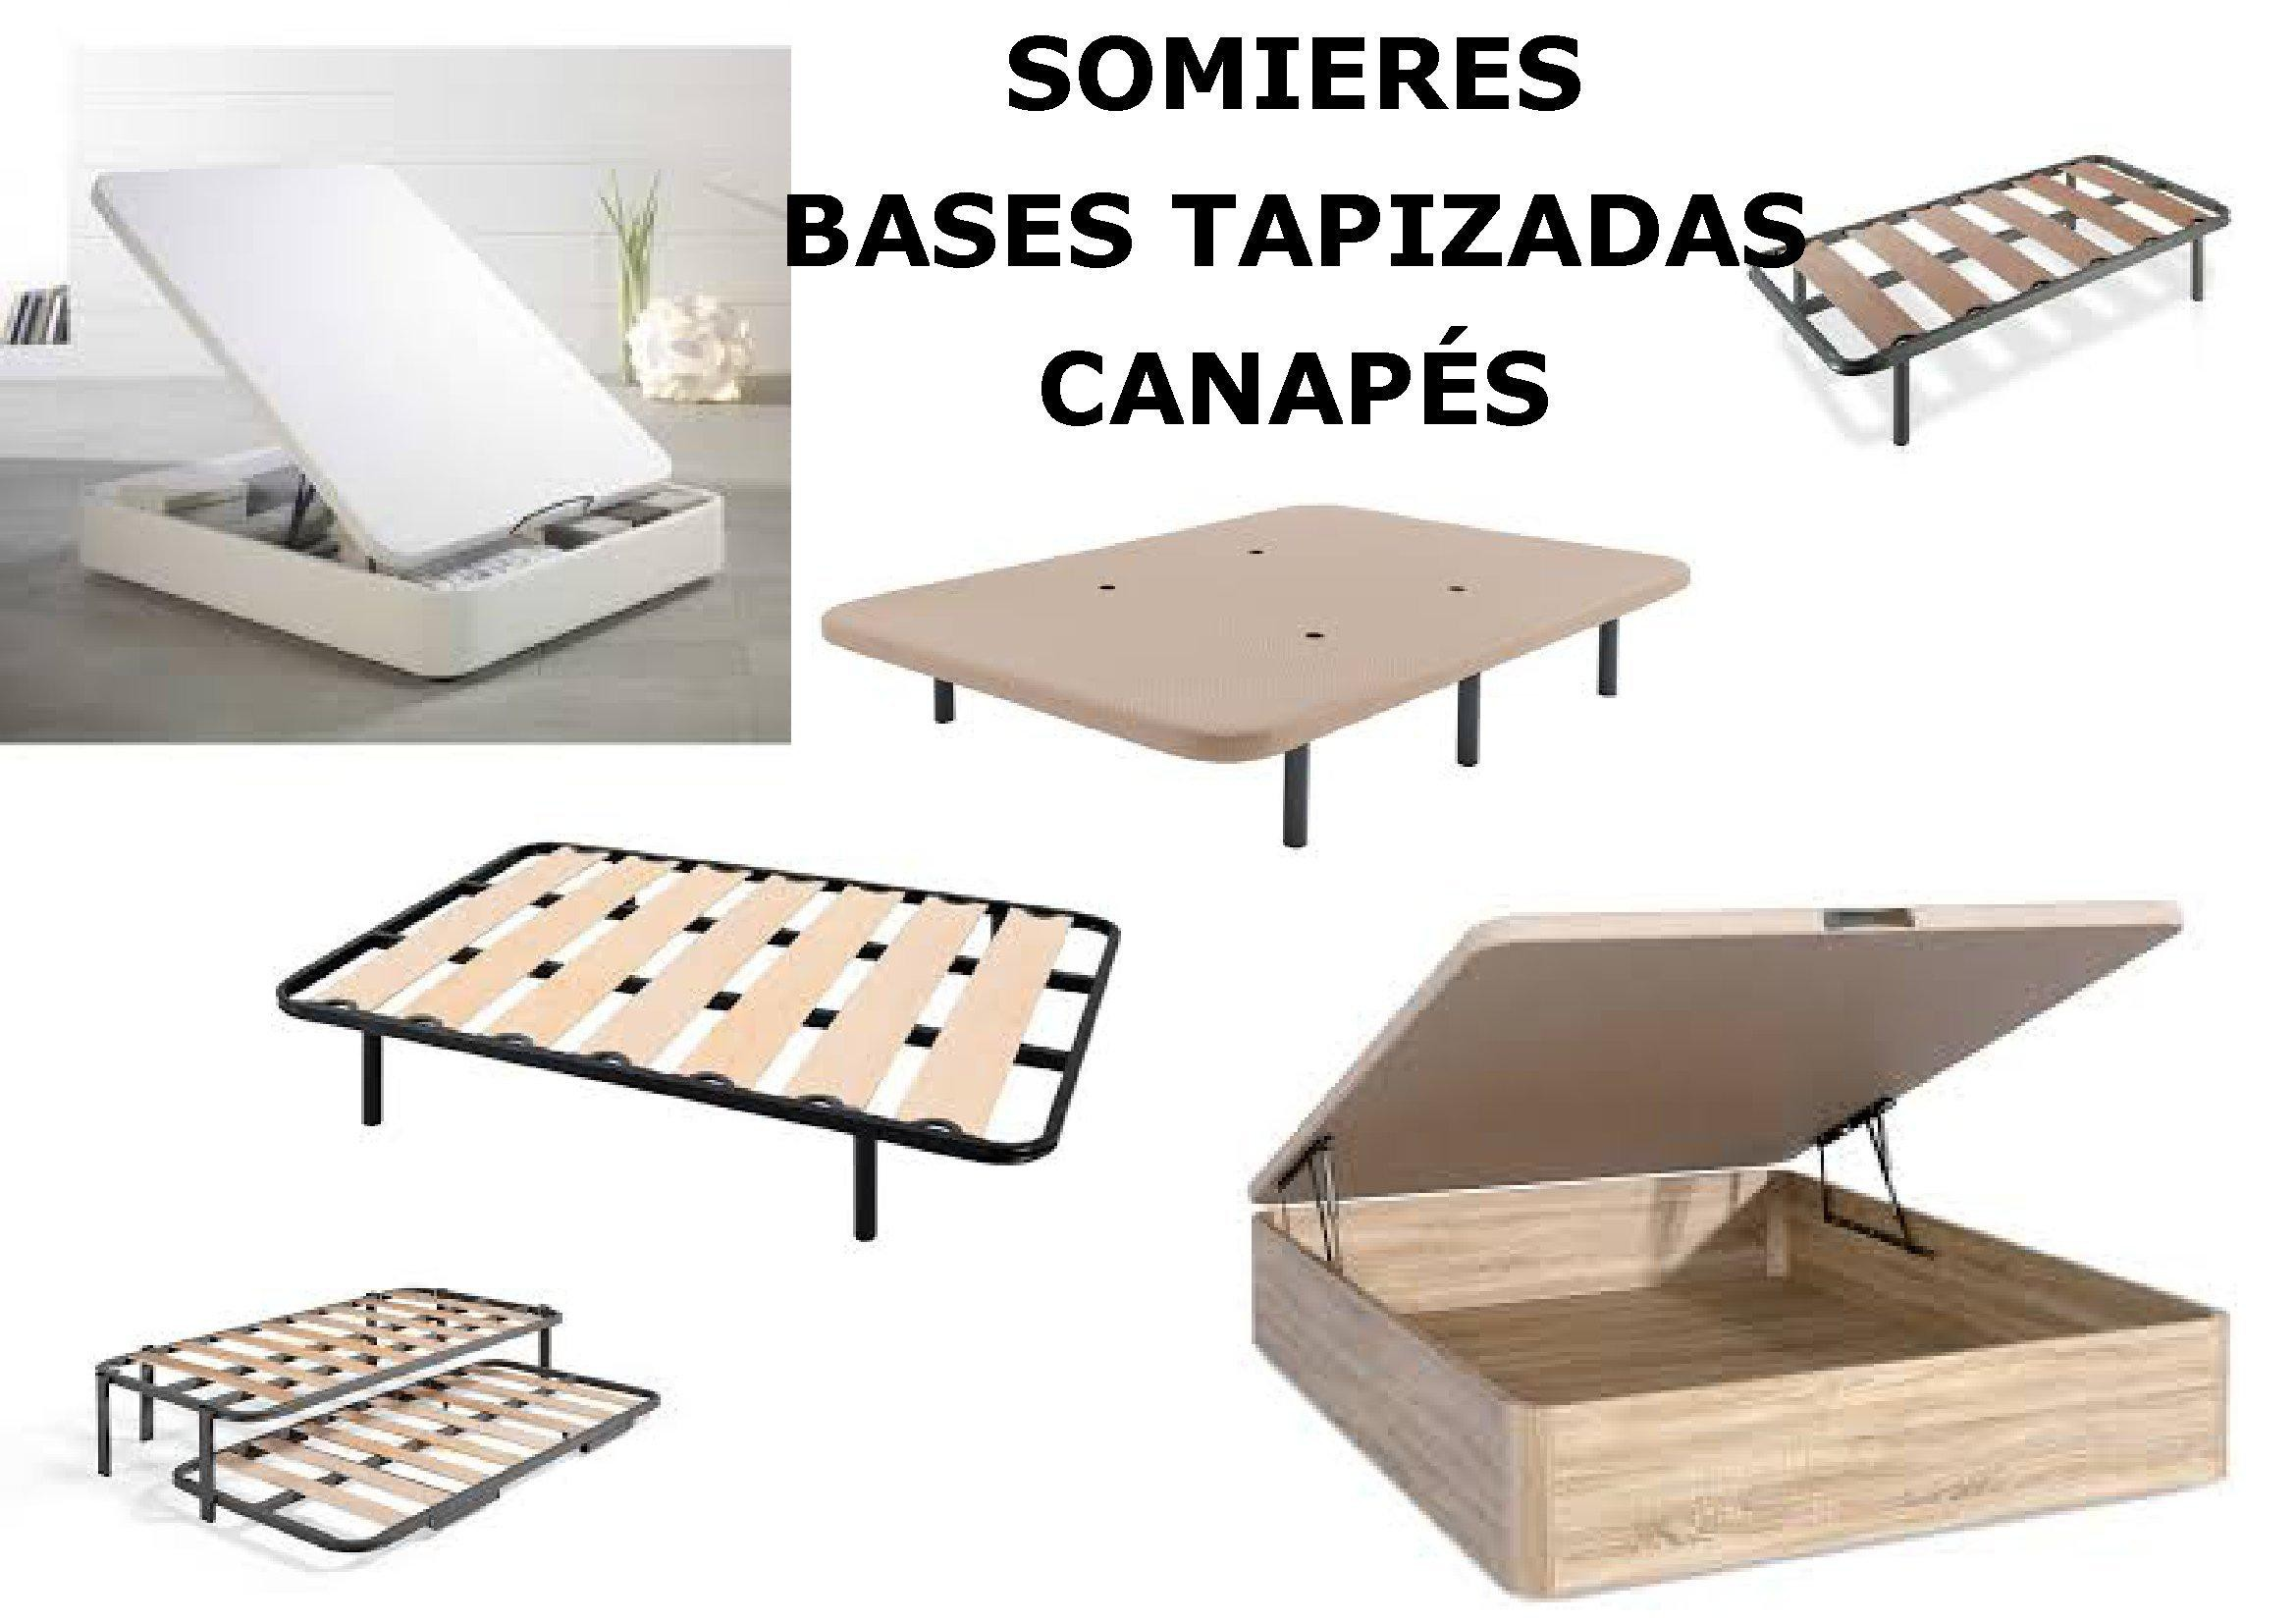 somieres, bases y canapes